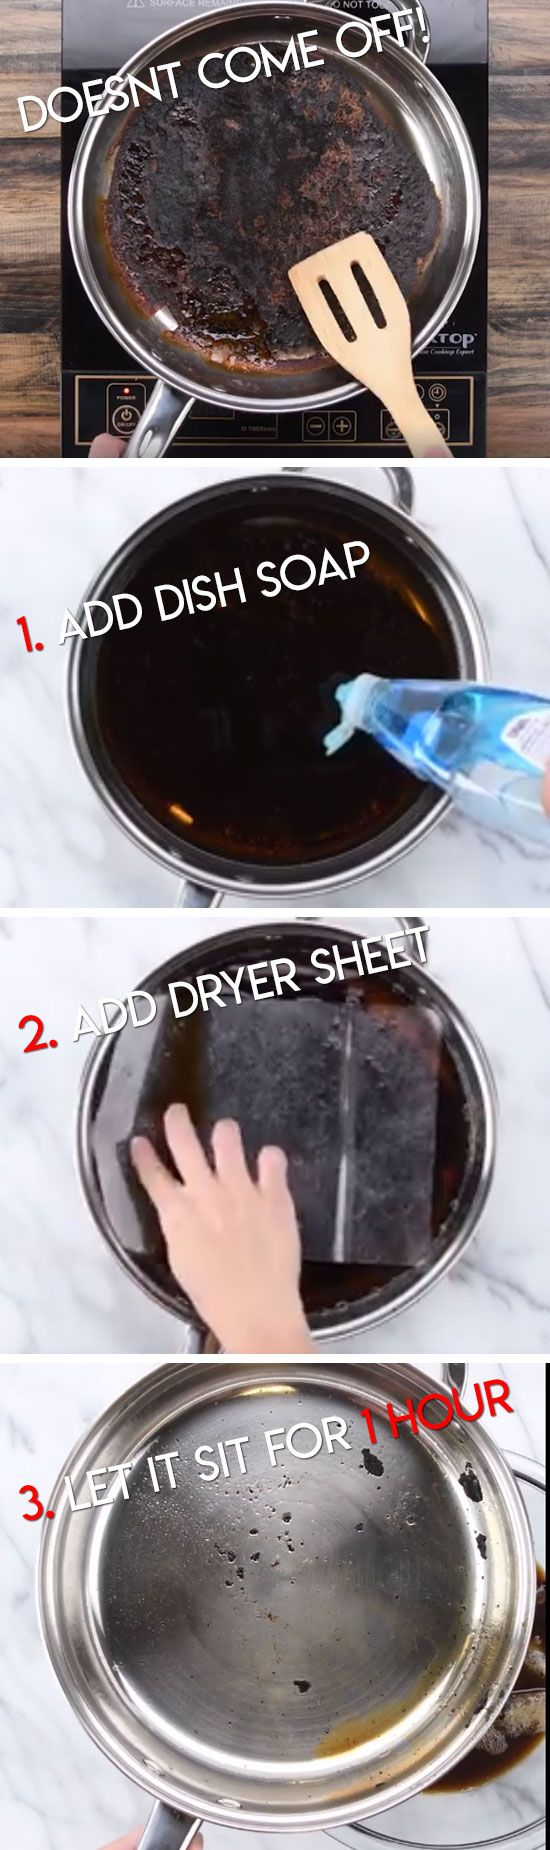 No Scrub Pan Clean | Life Hacks Every Girl Should Know | Lazy Girl Cleaning Hacks Tips and Tricks